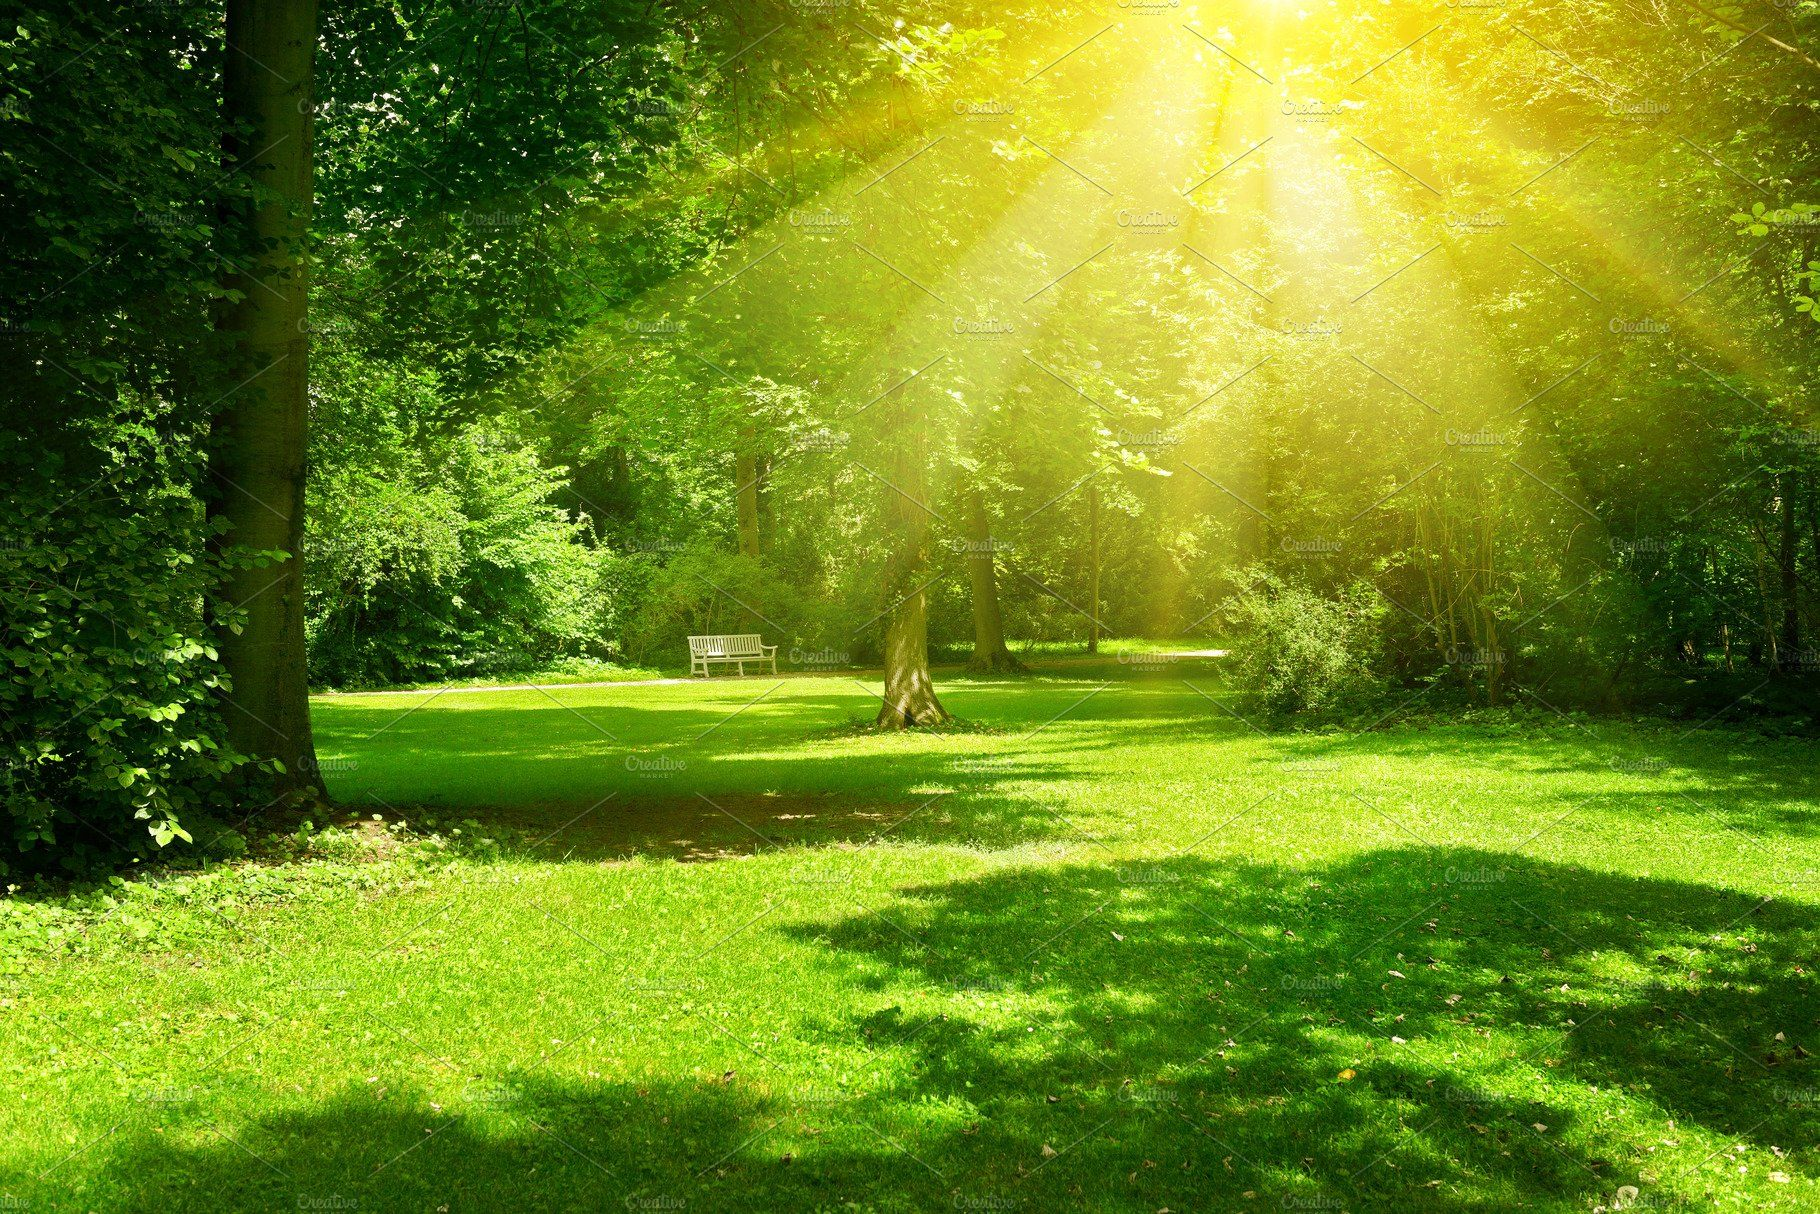 Bright Sunny Day In Park Anime Scenery Wallpaper Anime Backgrounds Wallpapers Anime Background